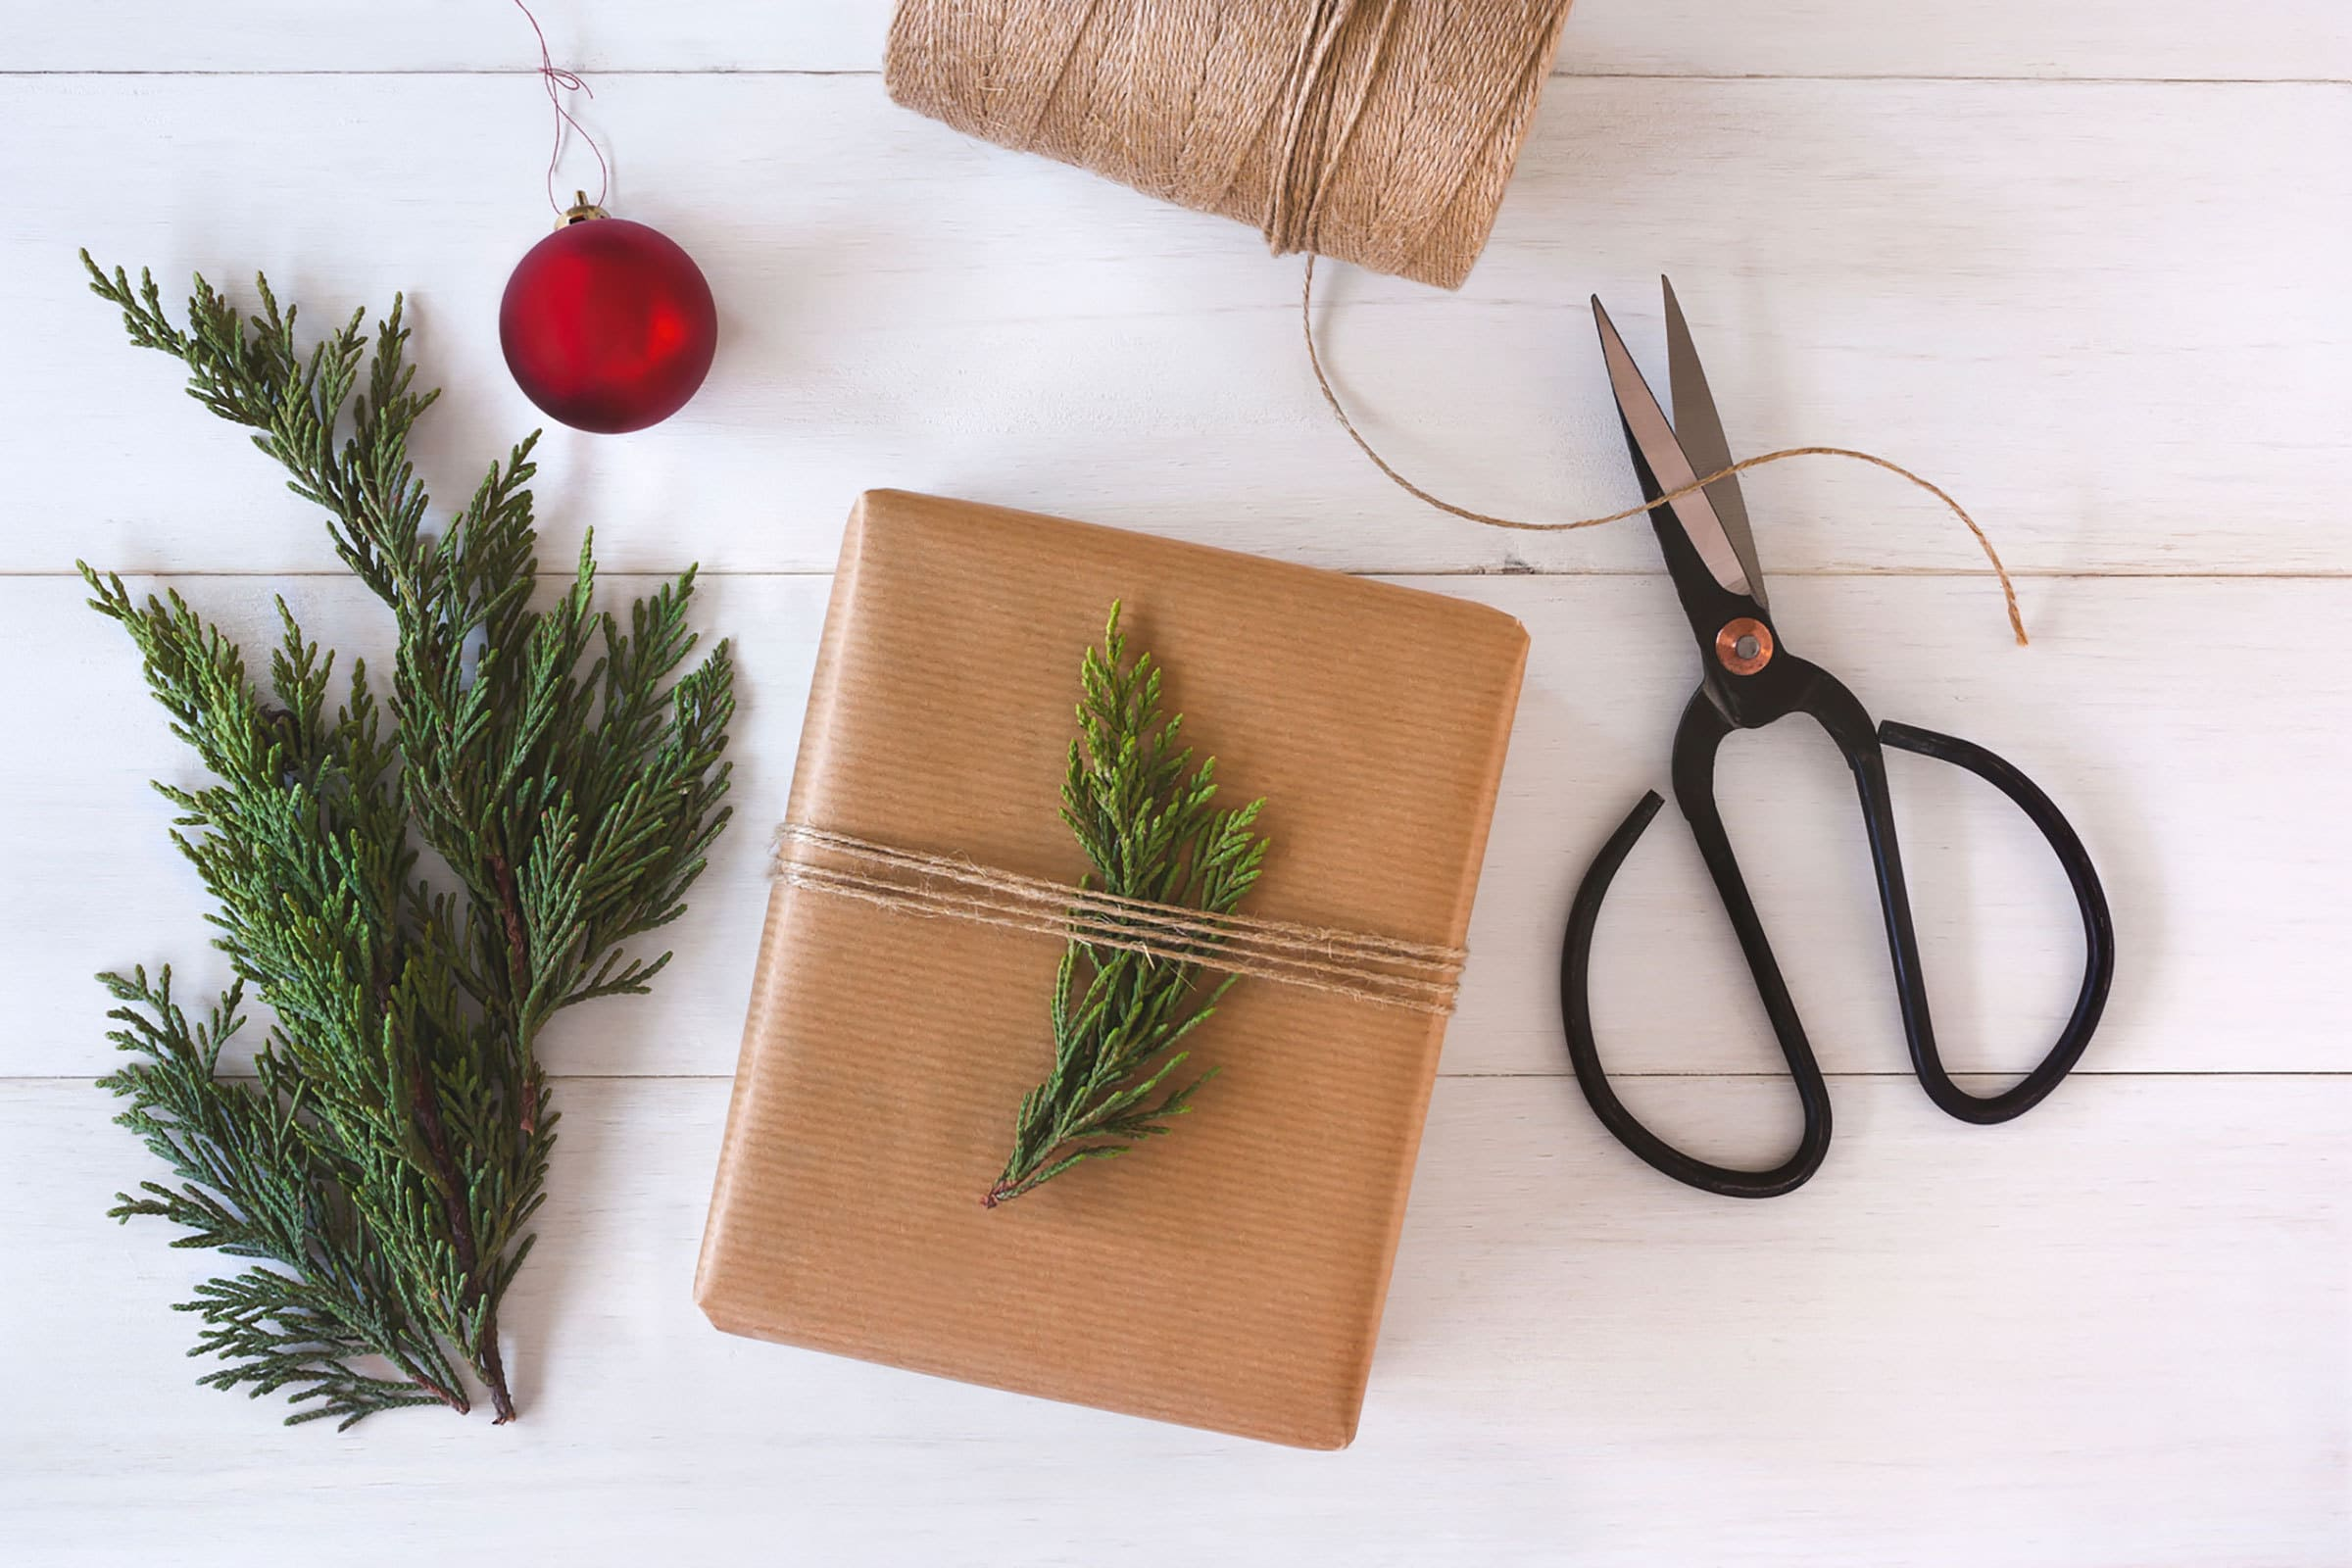 Christmas Ideas To Make.32 Diy Christmas Wrapping Paper Ideas For Your Gifts